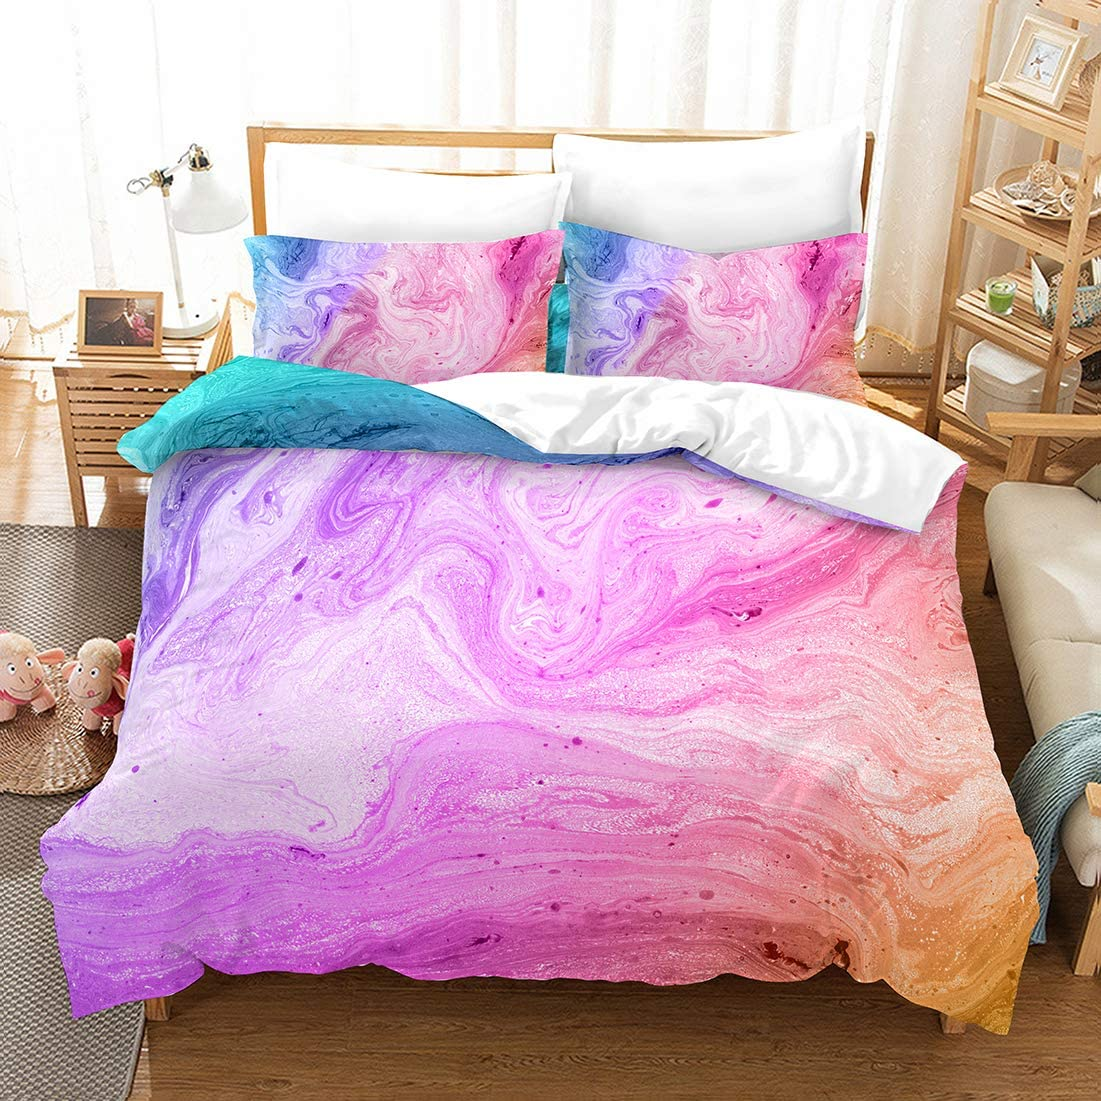 Amazon Com Watercolor Marble Bedding Marble Duvet Cover Set Pink